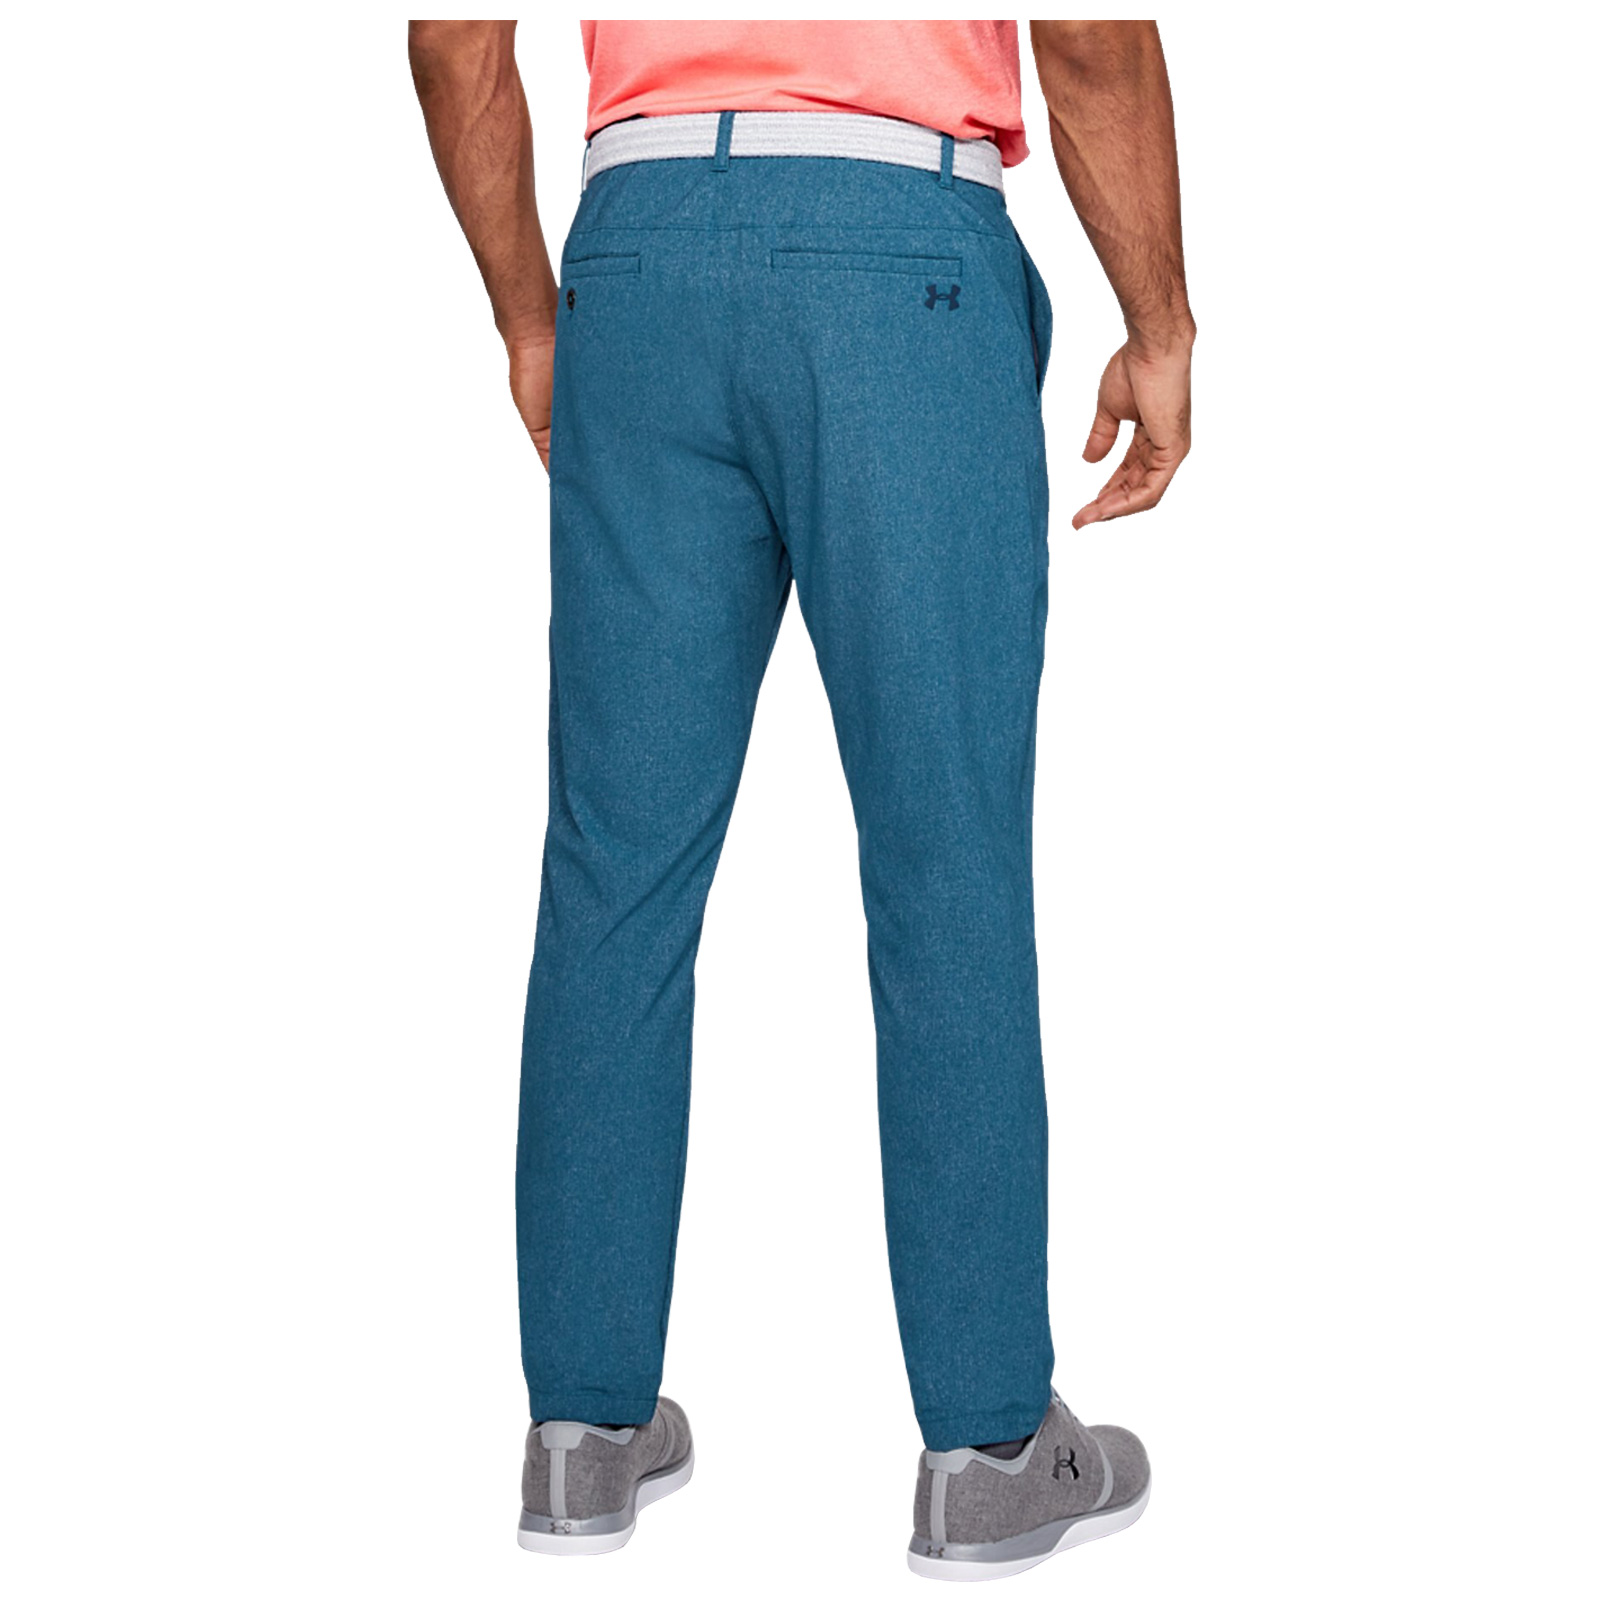 Under Armour Showdown Chino Tapered Pant - Mens